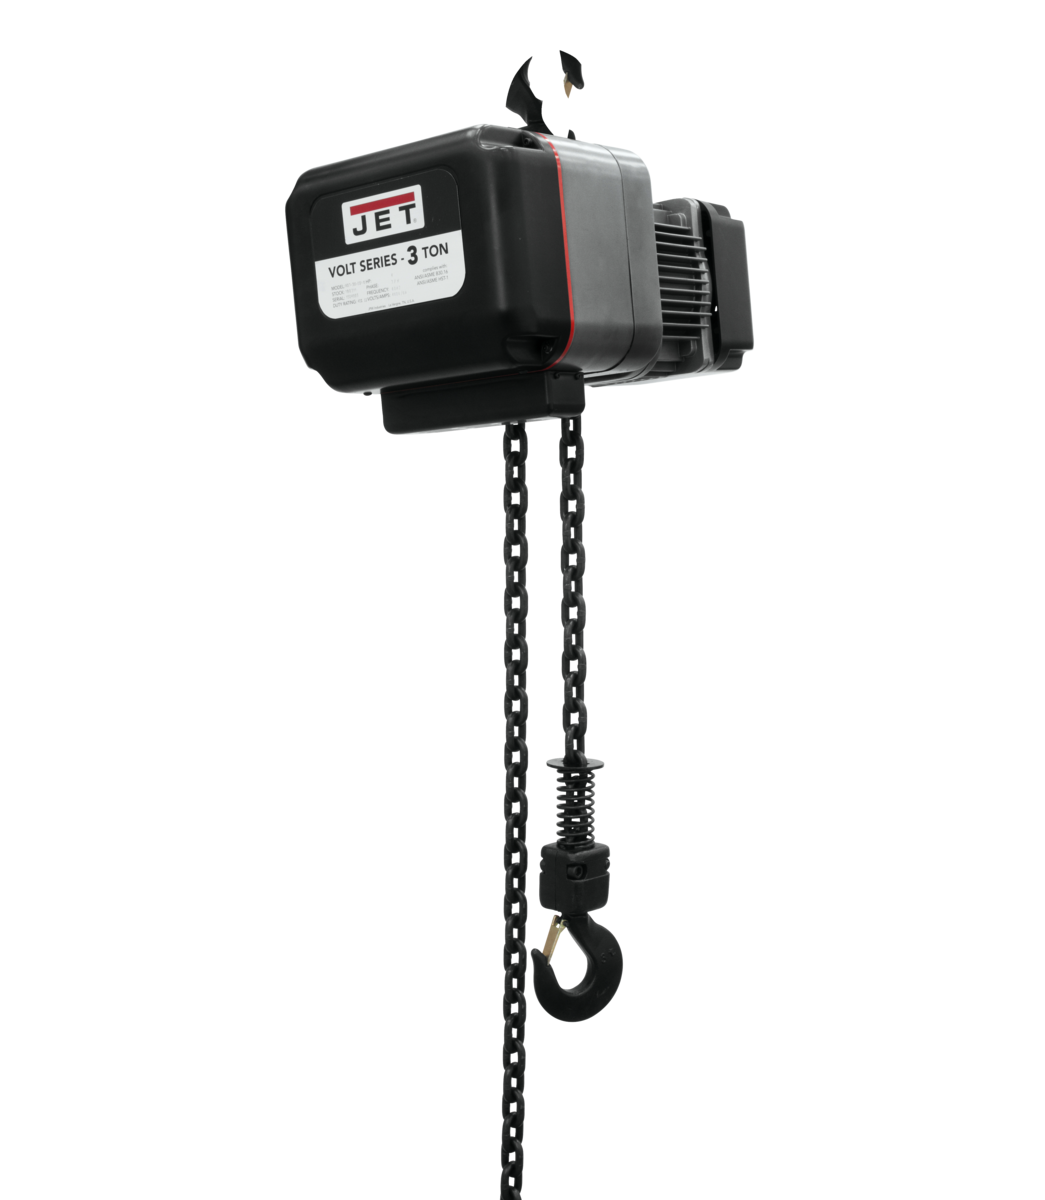 VOLT 3T VARIABLE-SPEED ELECTRIC HOIST 3PH 460V 15' LIFT